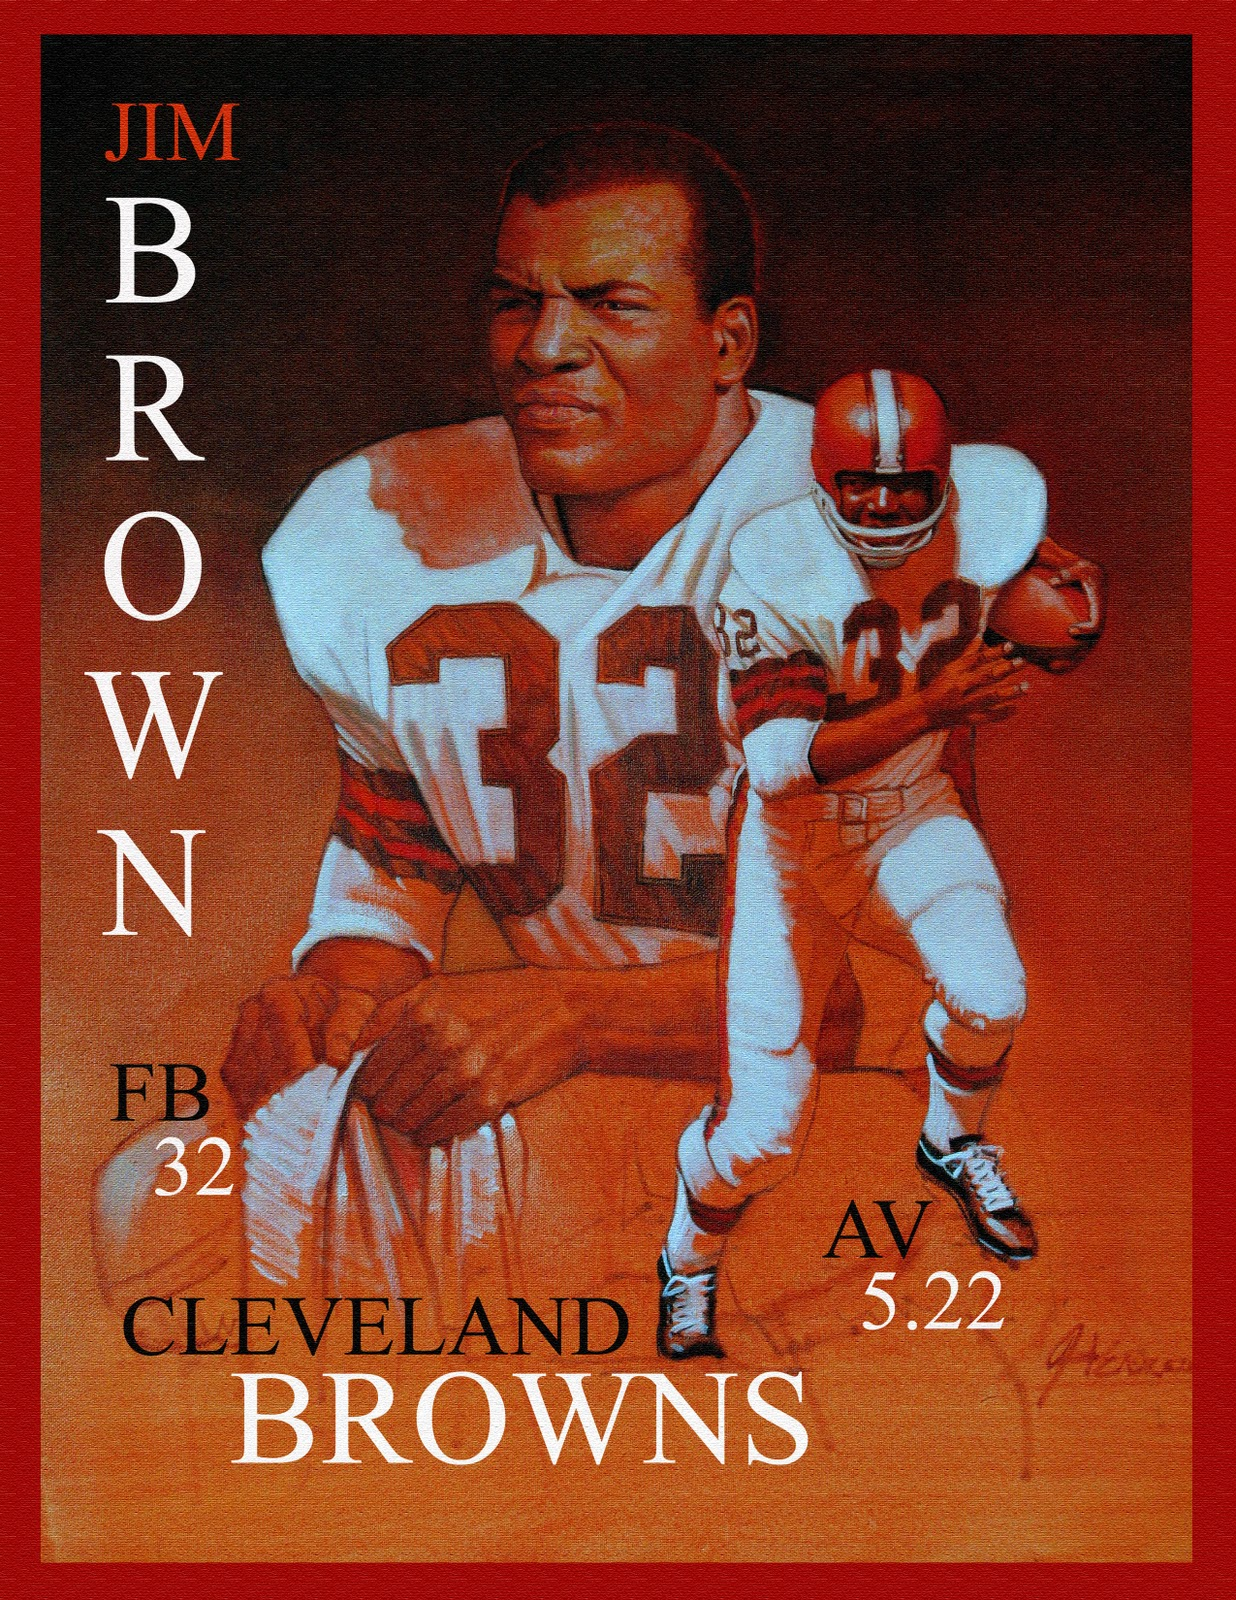 Jim Brown Highlight Video {Jim Brown 77 Today} | slicethelife